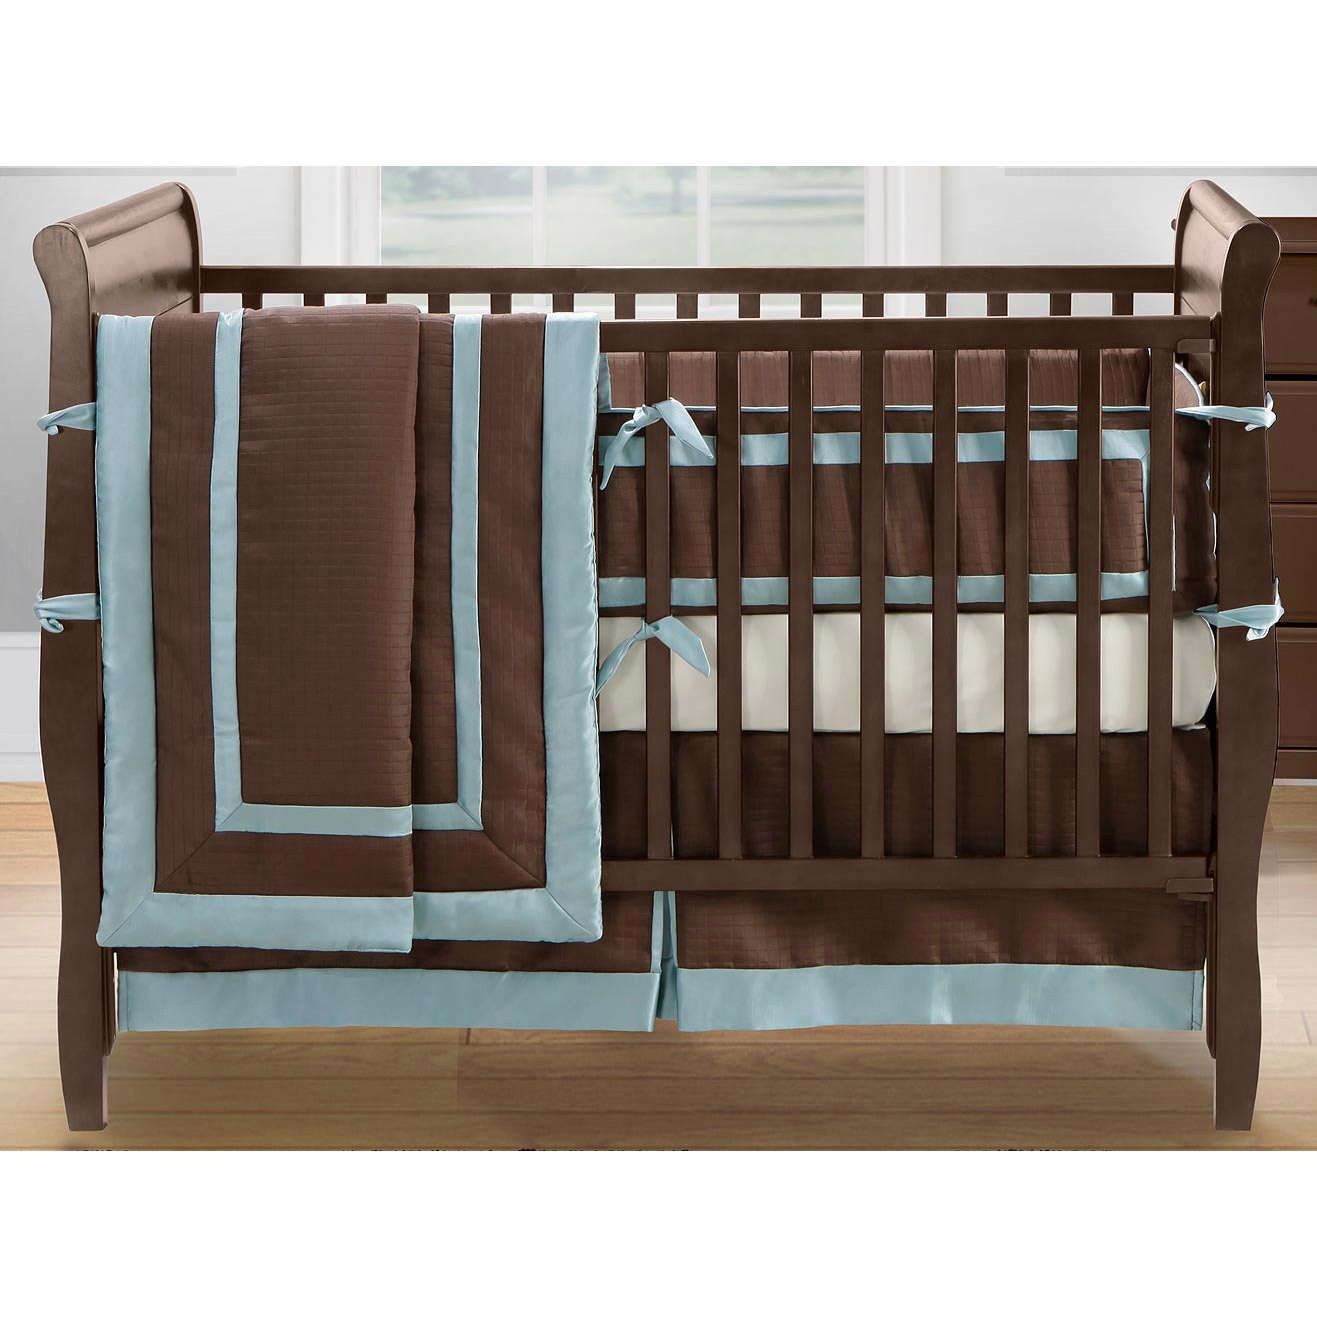 brooklyn brown 12 piece crib set by bananafish what s included